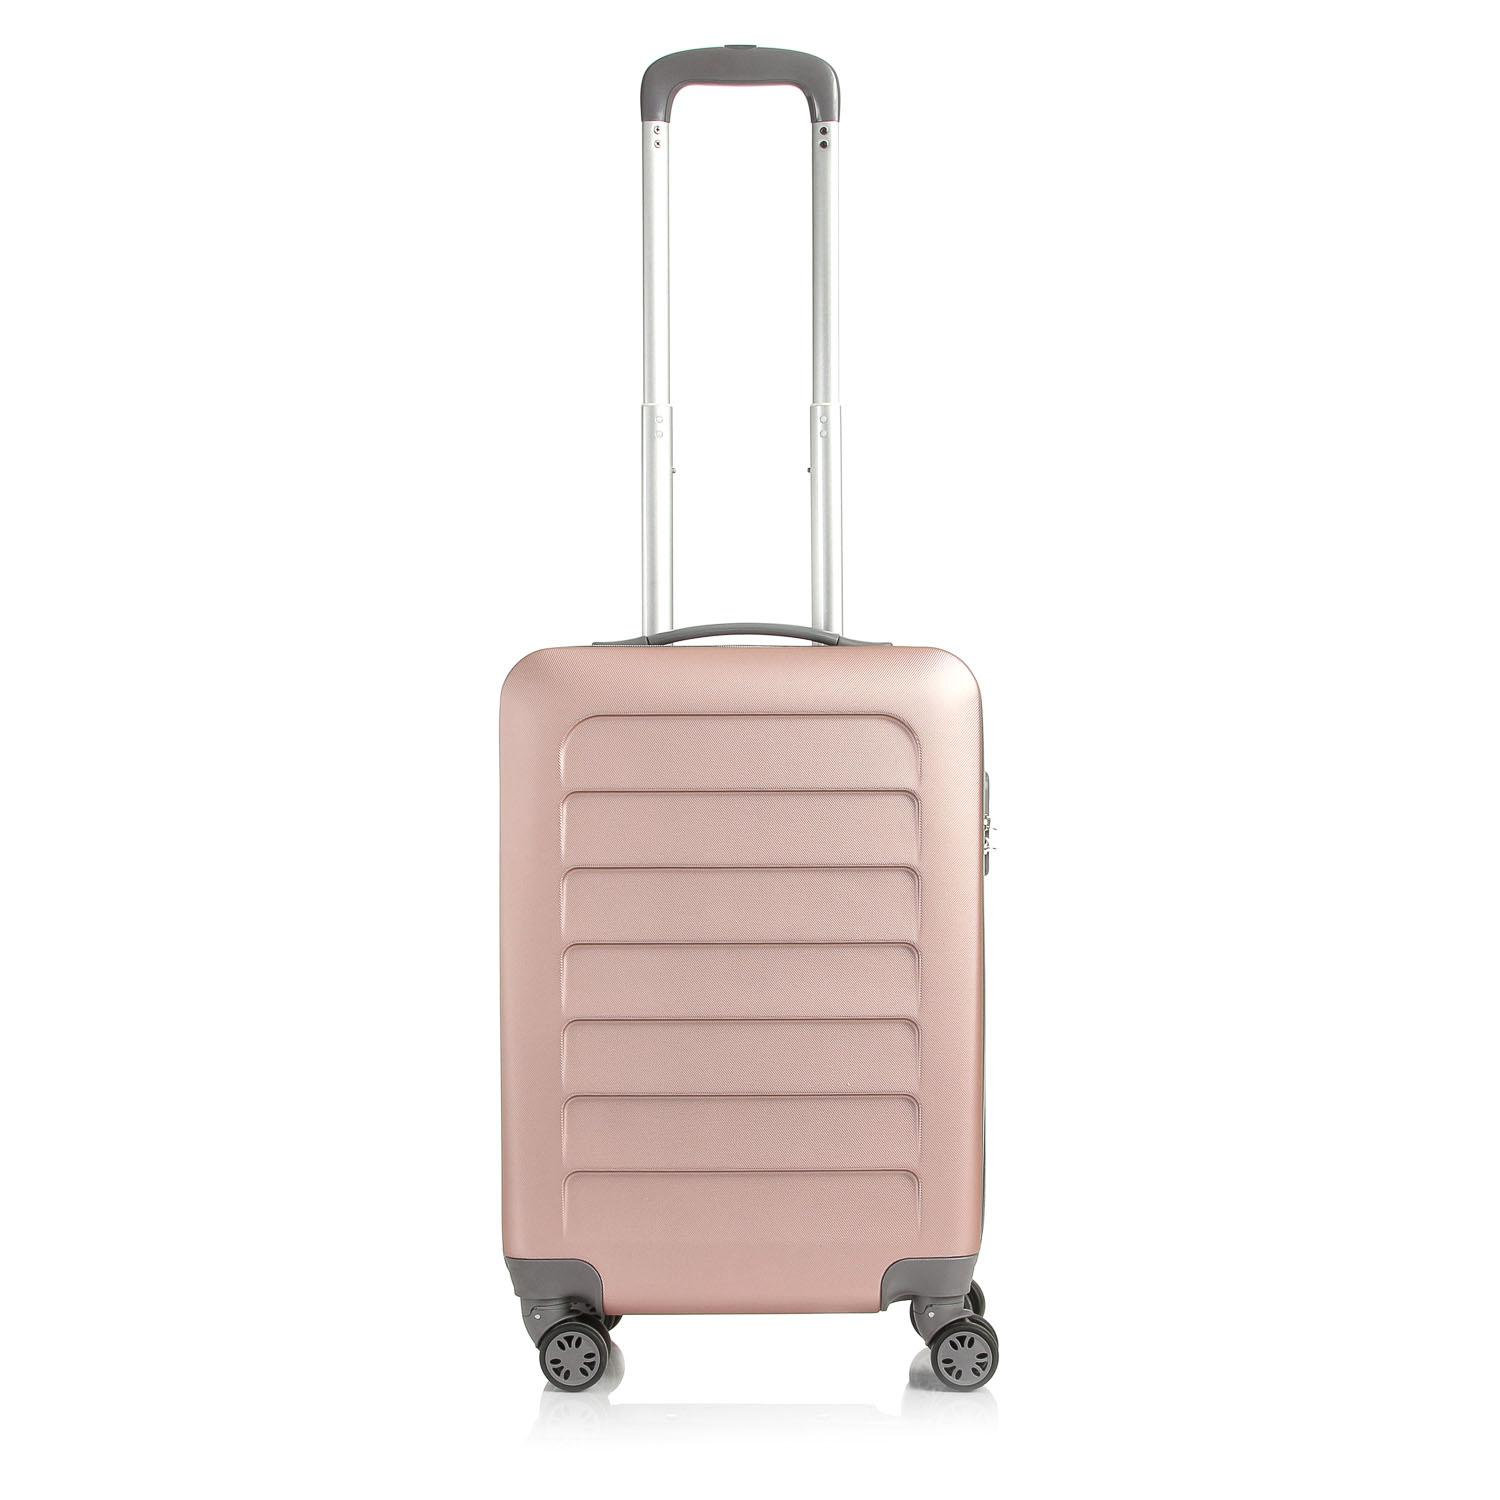 Luggage for sale - Luggage Bag online brands, prices   reviews in ... f411c2a6fa